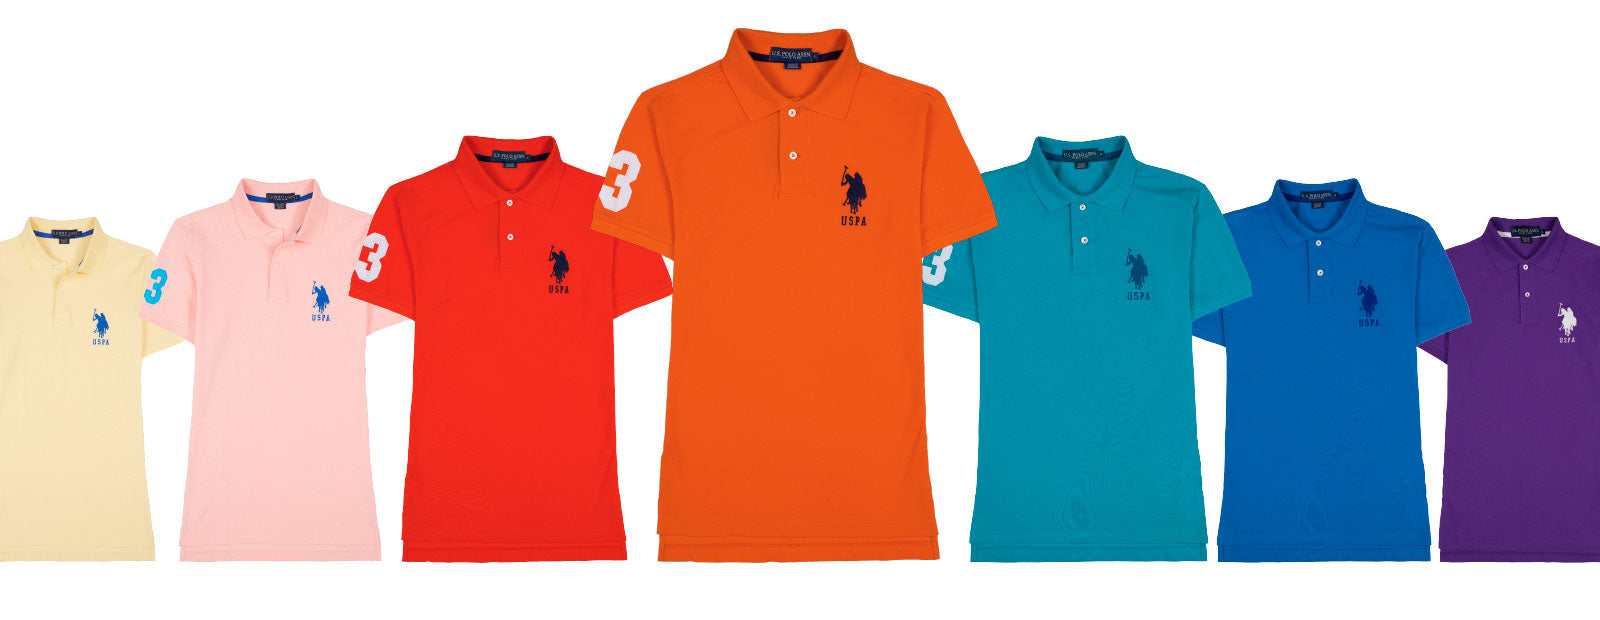 5b5c9e3b7a Pick Your Favorite. USPA Logo Shirt